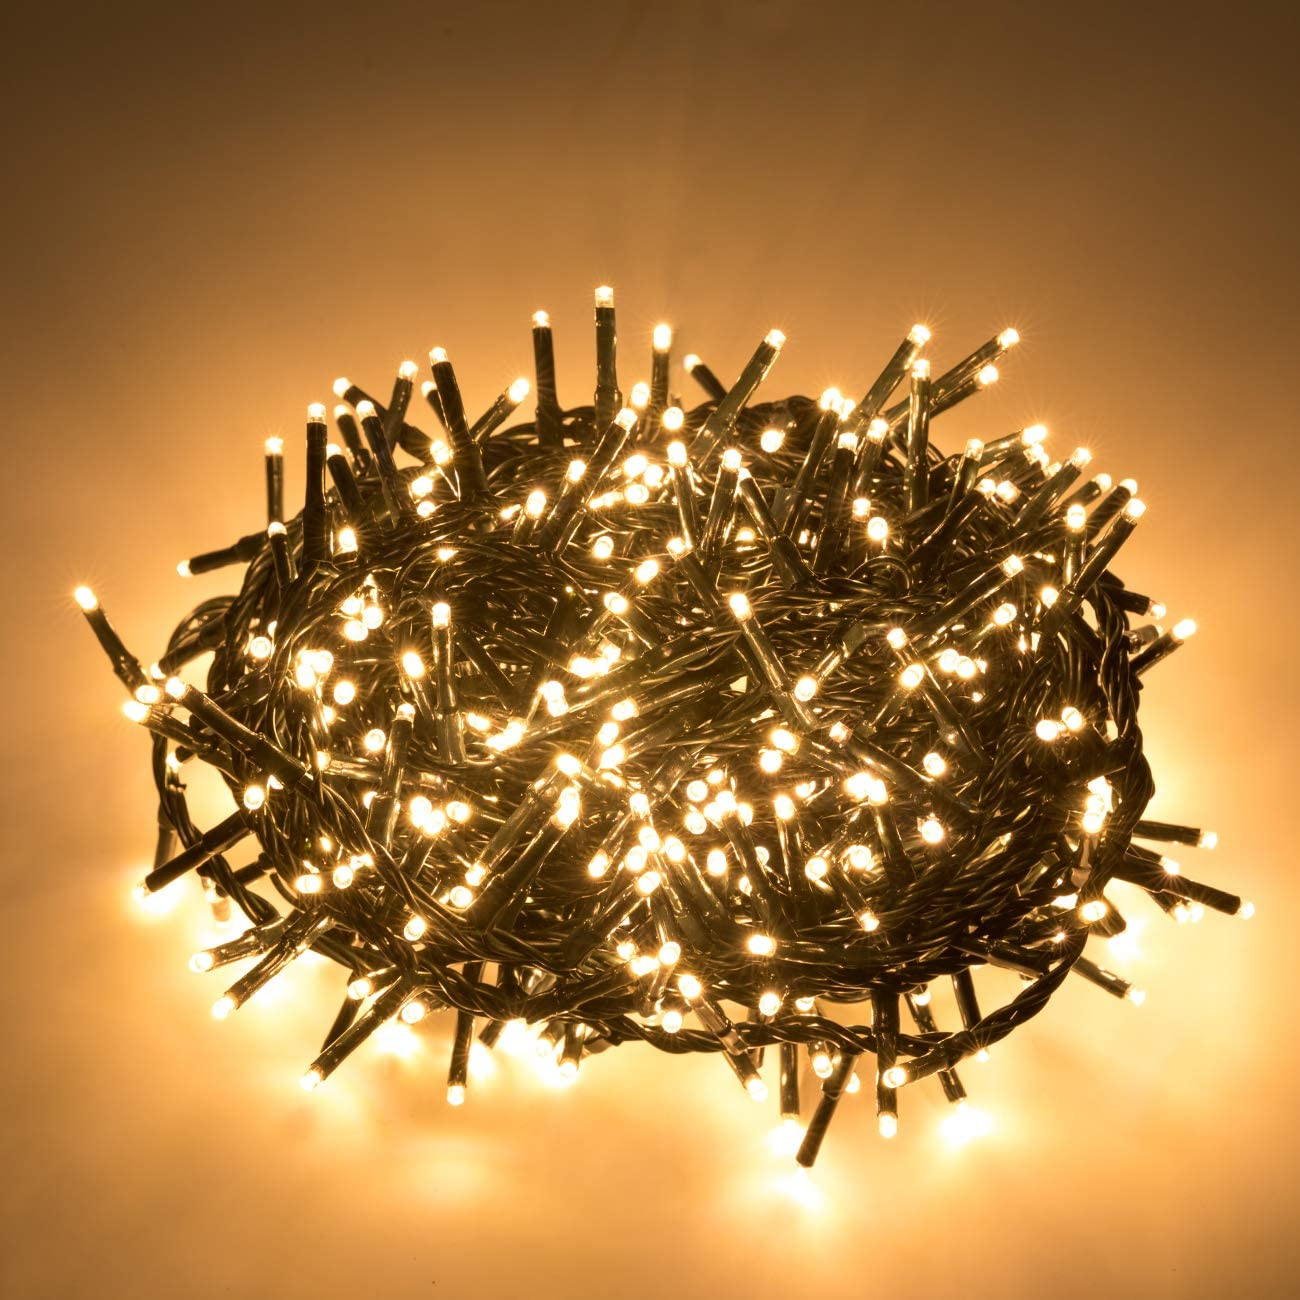 AWQ 500 LED 49ft Christmas Cluster Lights Christmas String Lights Decoration Lights for Christmas Home Garden Wedding Party Xmas Tree Bedroom Indoor Outdoor Decor